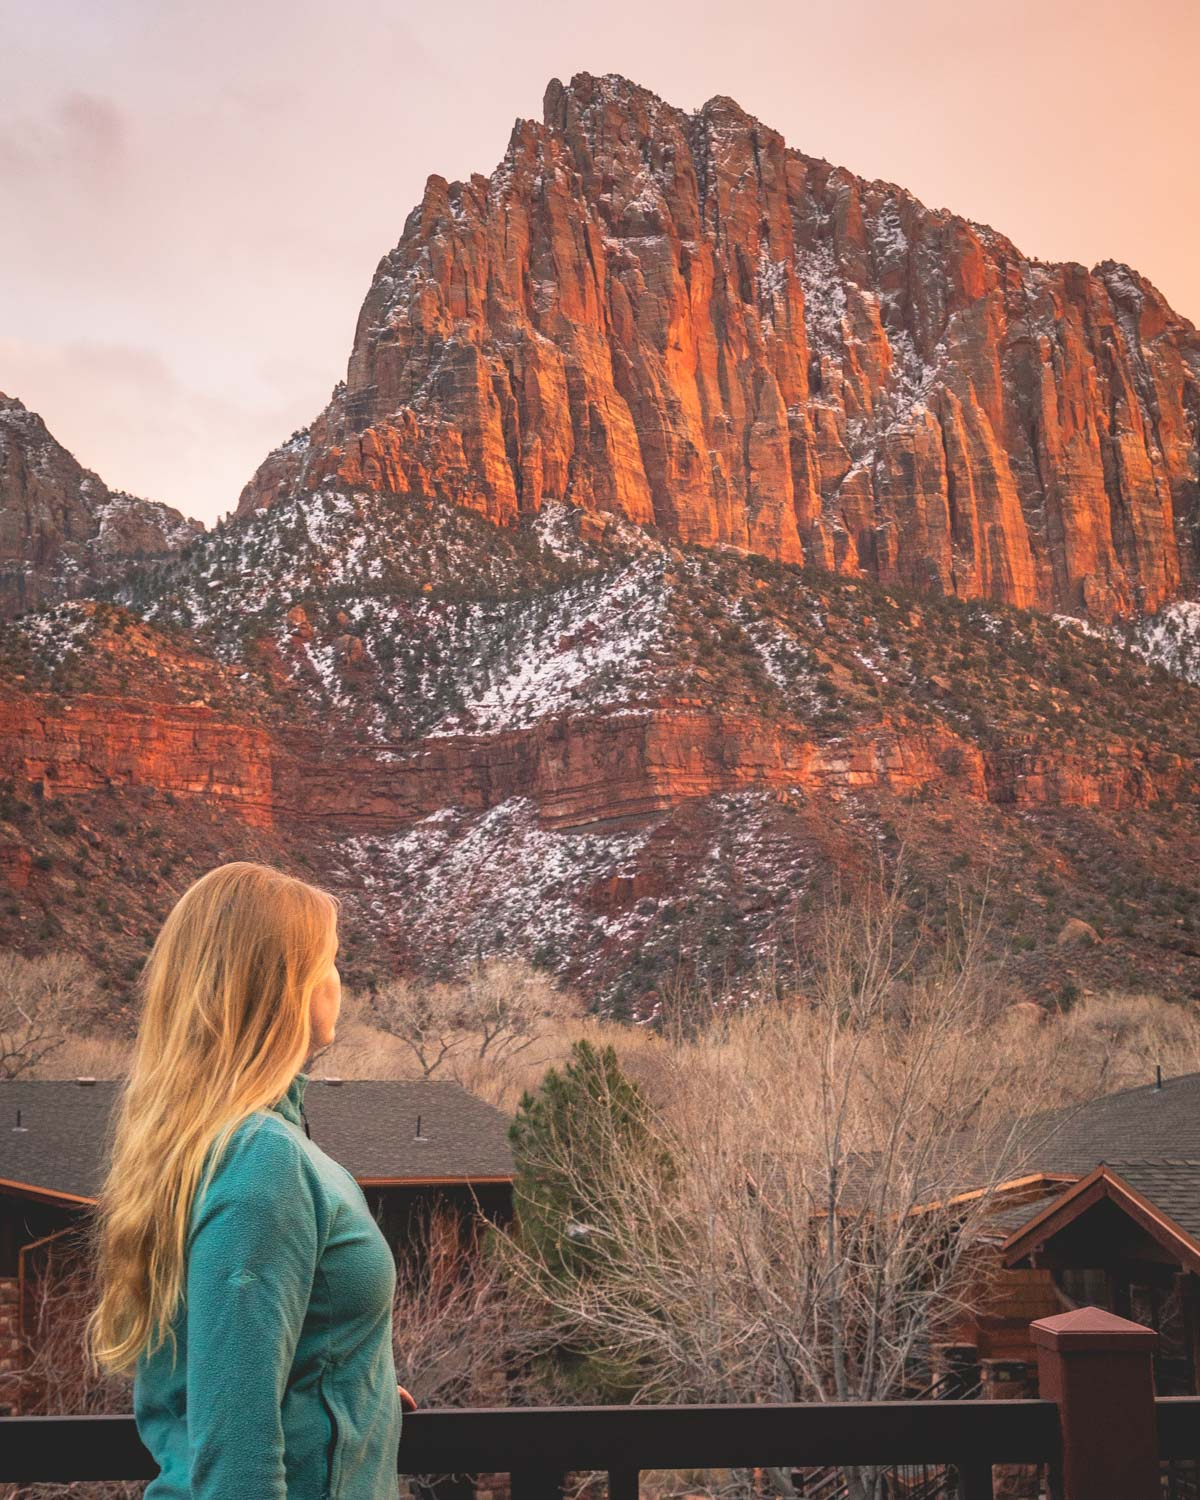 The views of the Watchman for the Cable Mountain Lodge in Springdale